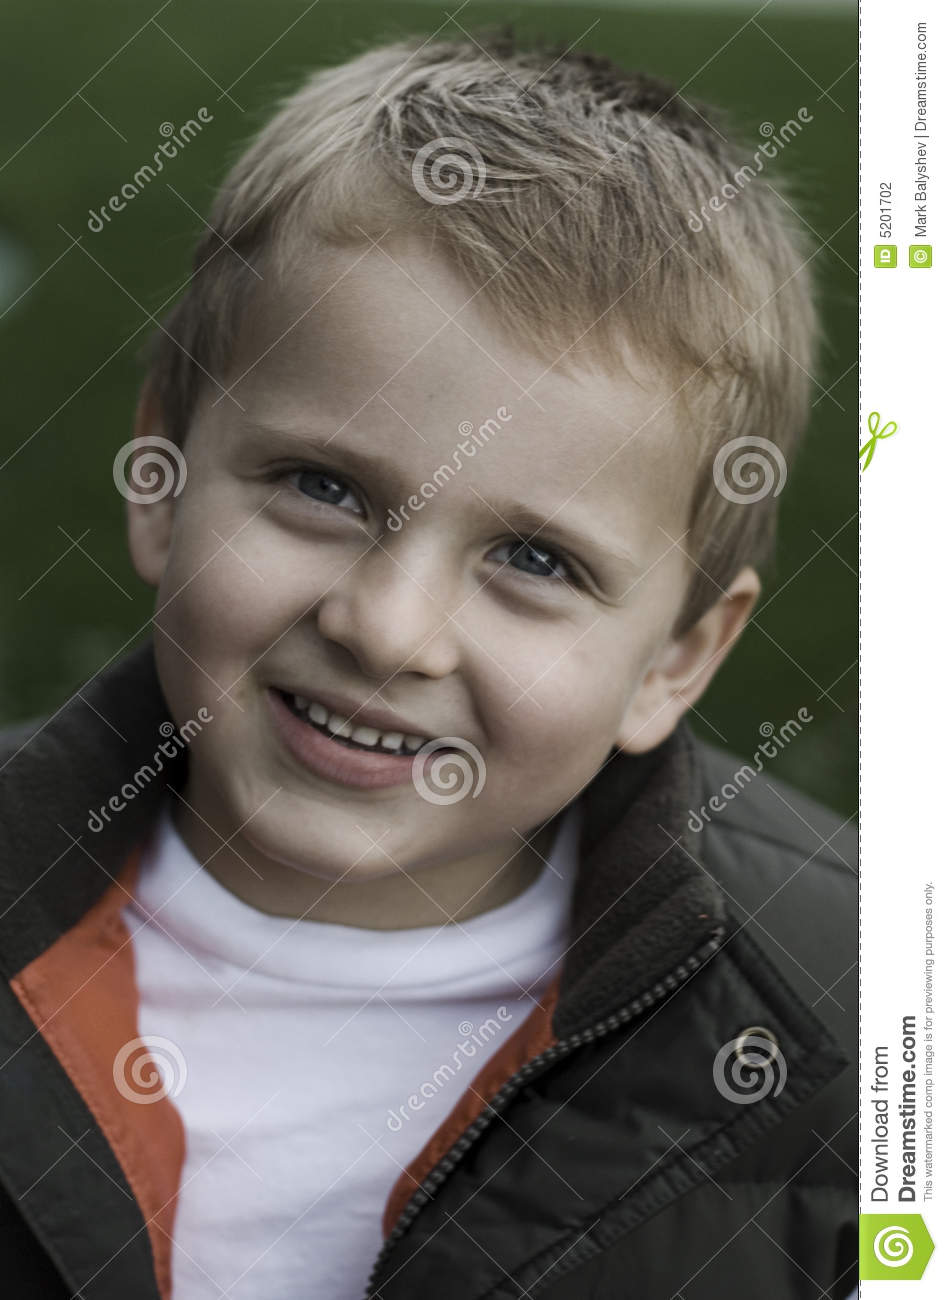 Little Kid Smiling Stock Photography - Image: 5201702